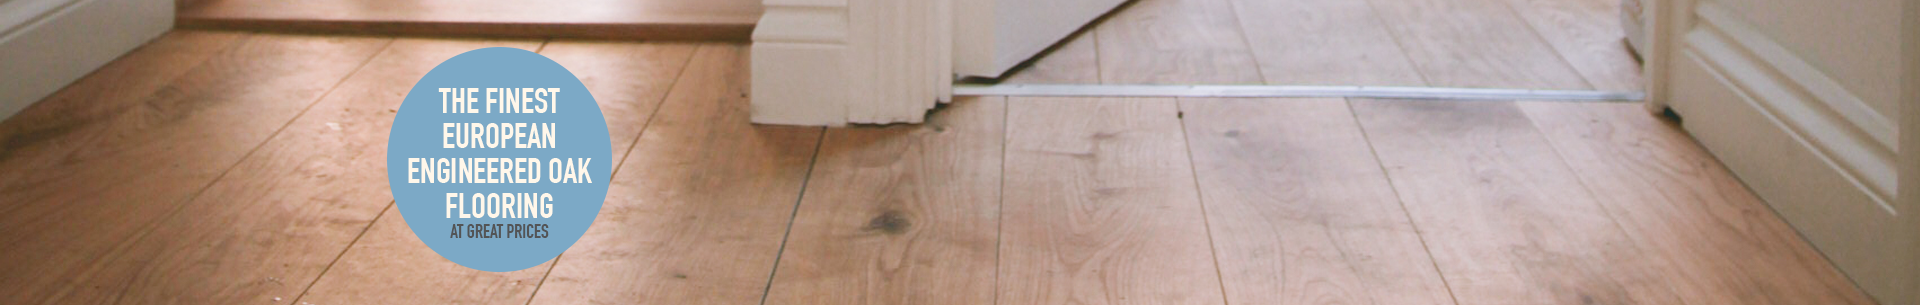 The finest European Engineered Oak flooring at great prices